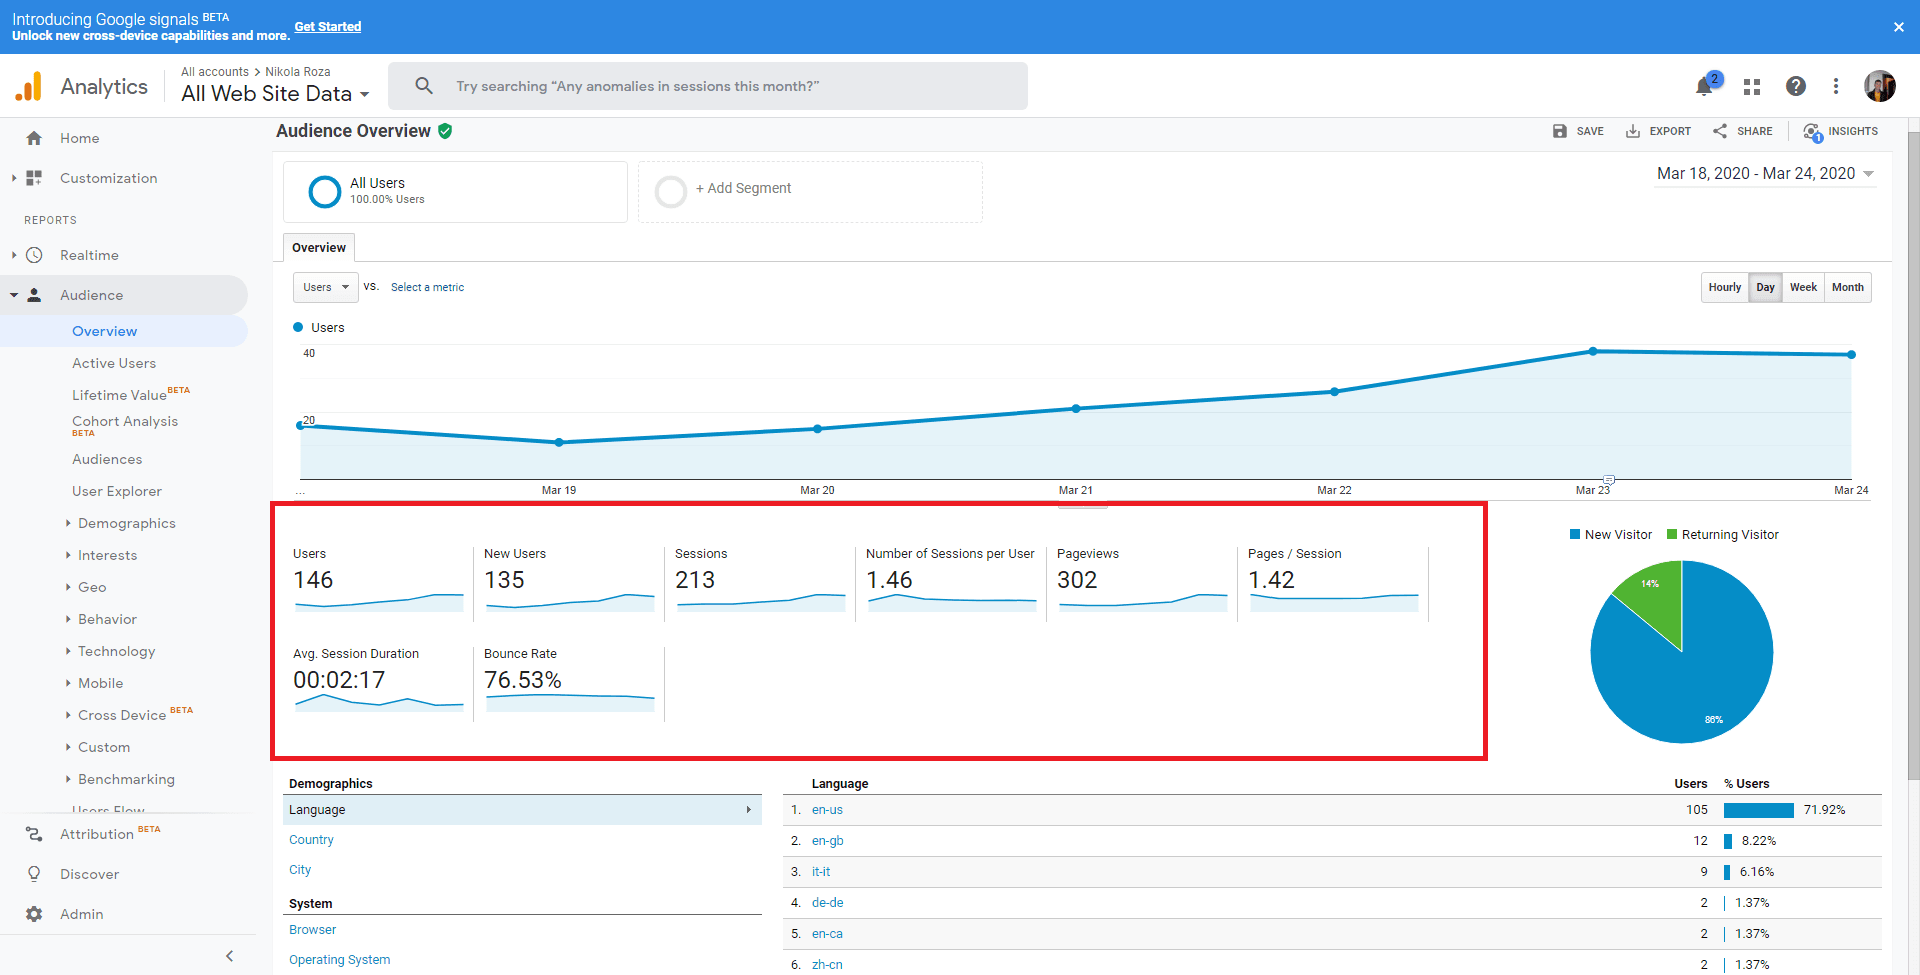 Audience overview and Ux metrics